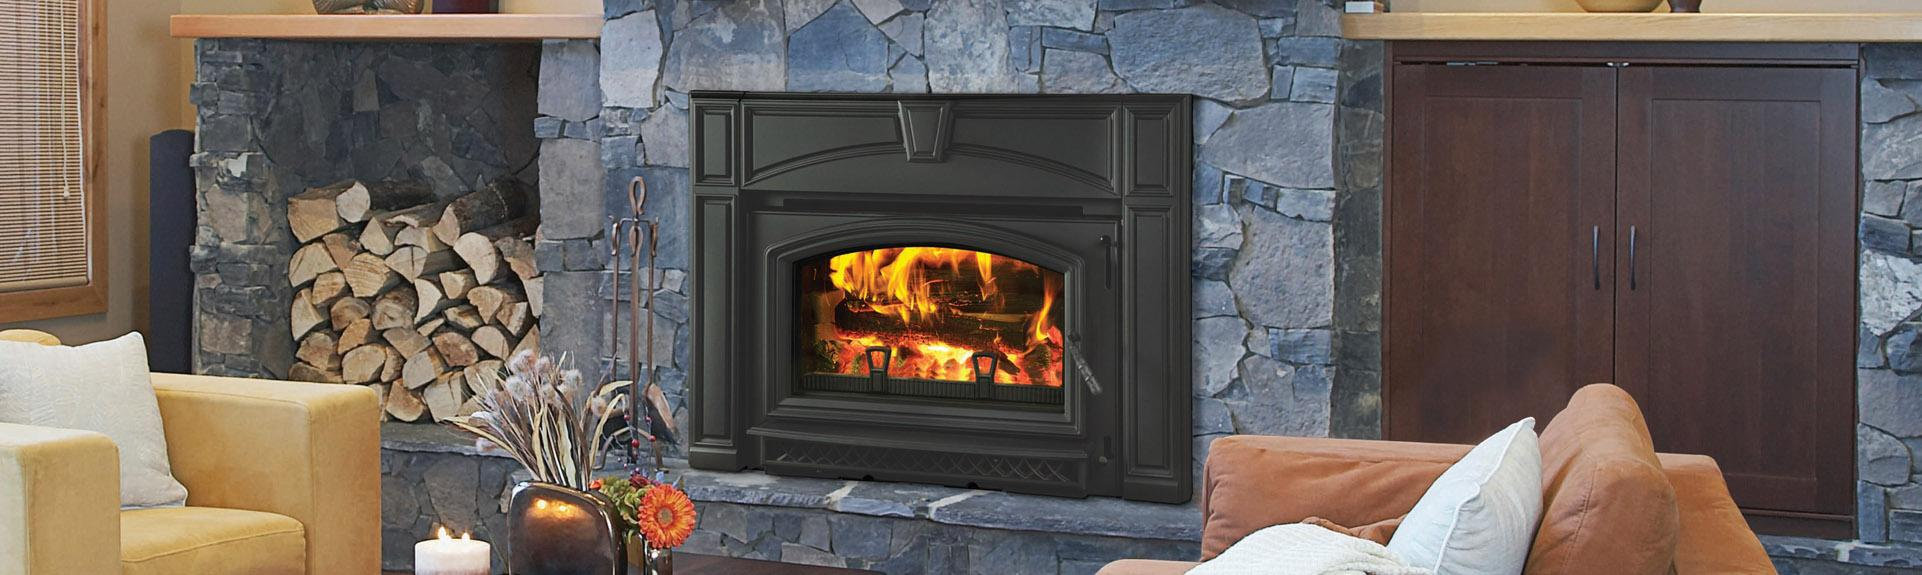 harman fireplace inserts monmouth county wood stove nj